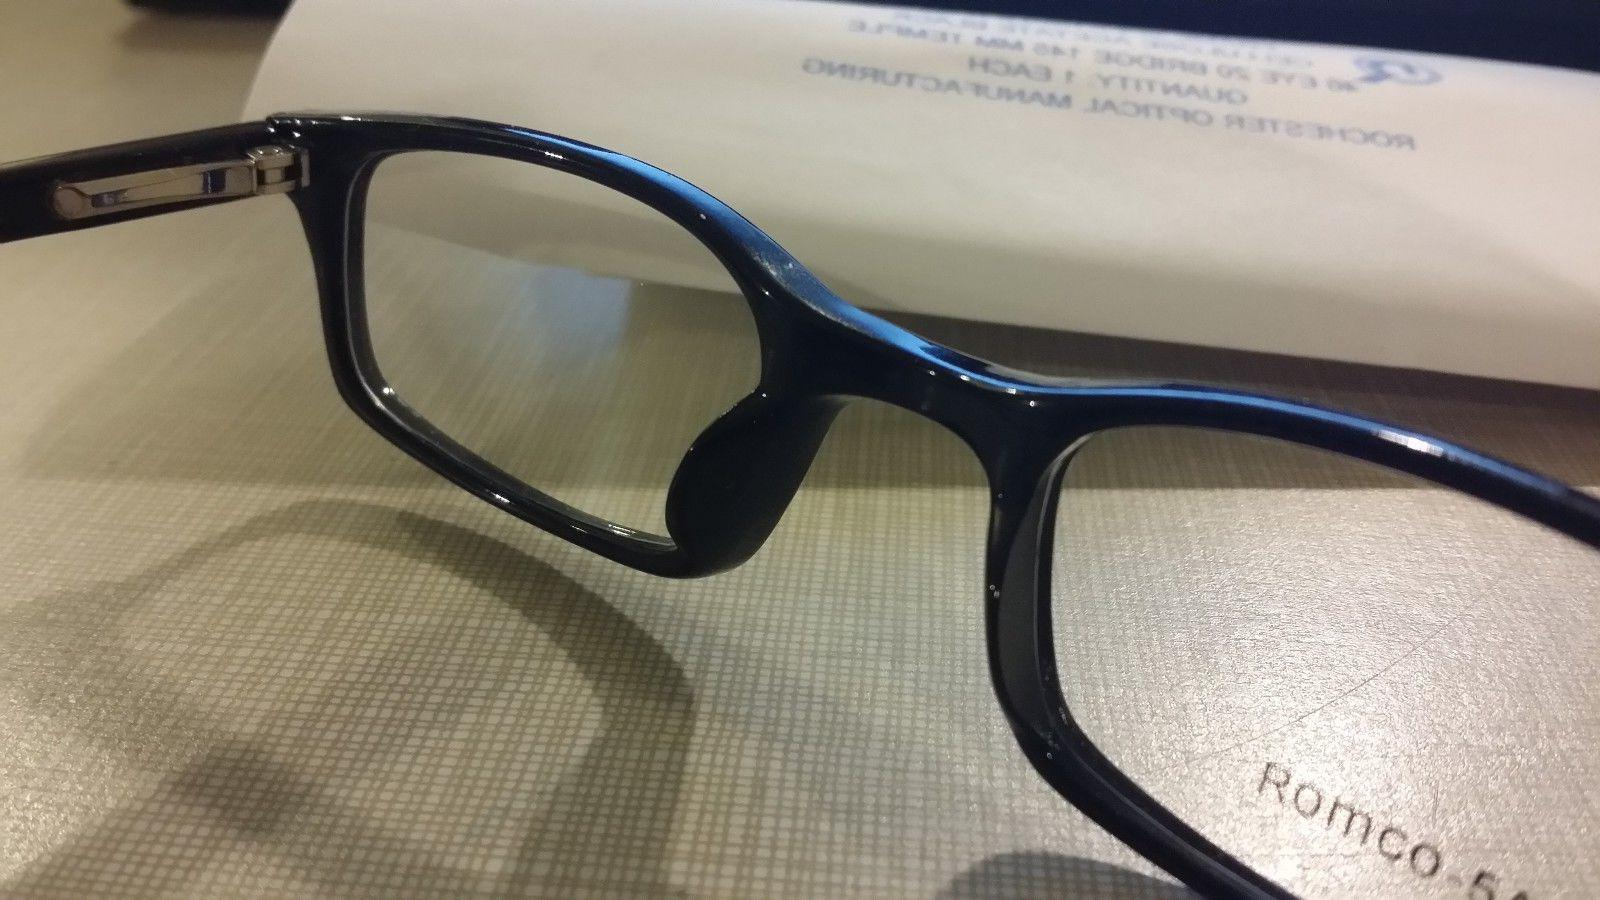 ROCHESTER OPTICAL R-5A SPECTACLE EYE 46-20-145 OPTOMETRY PROP